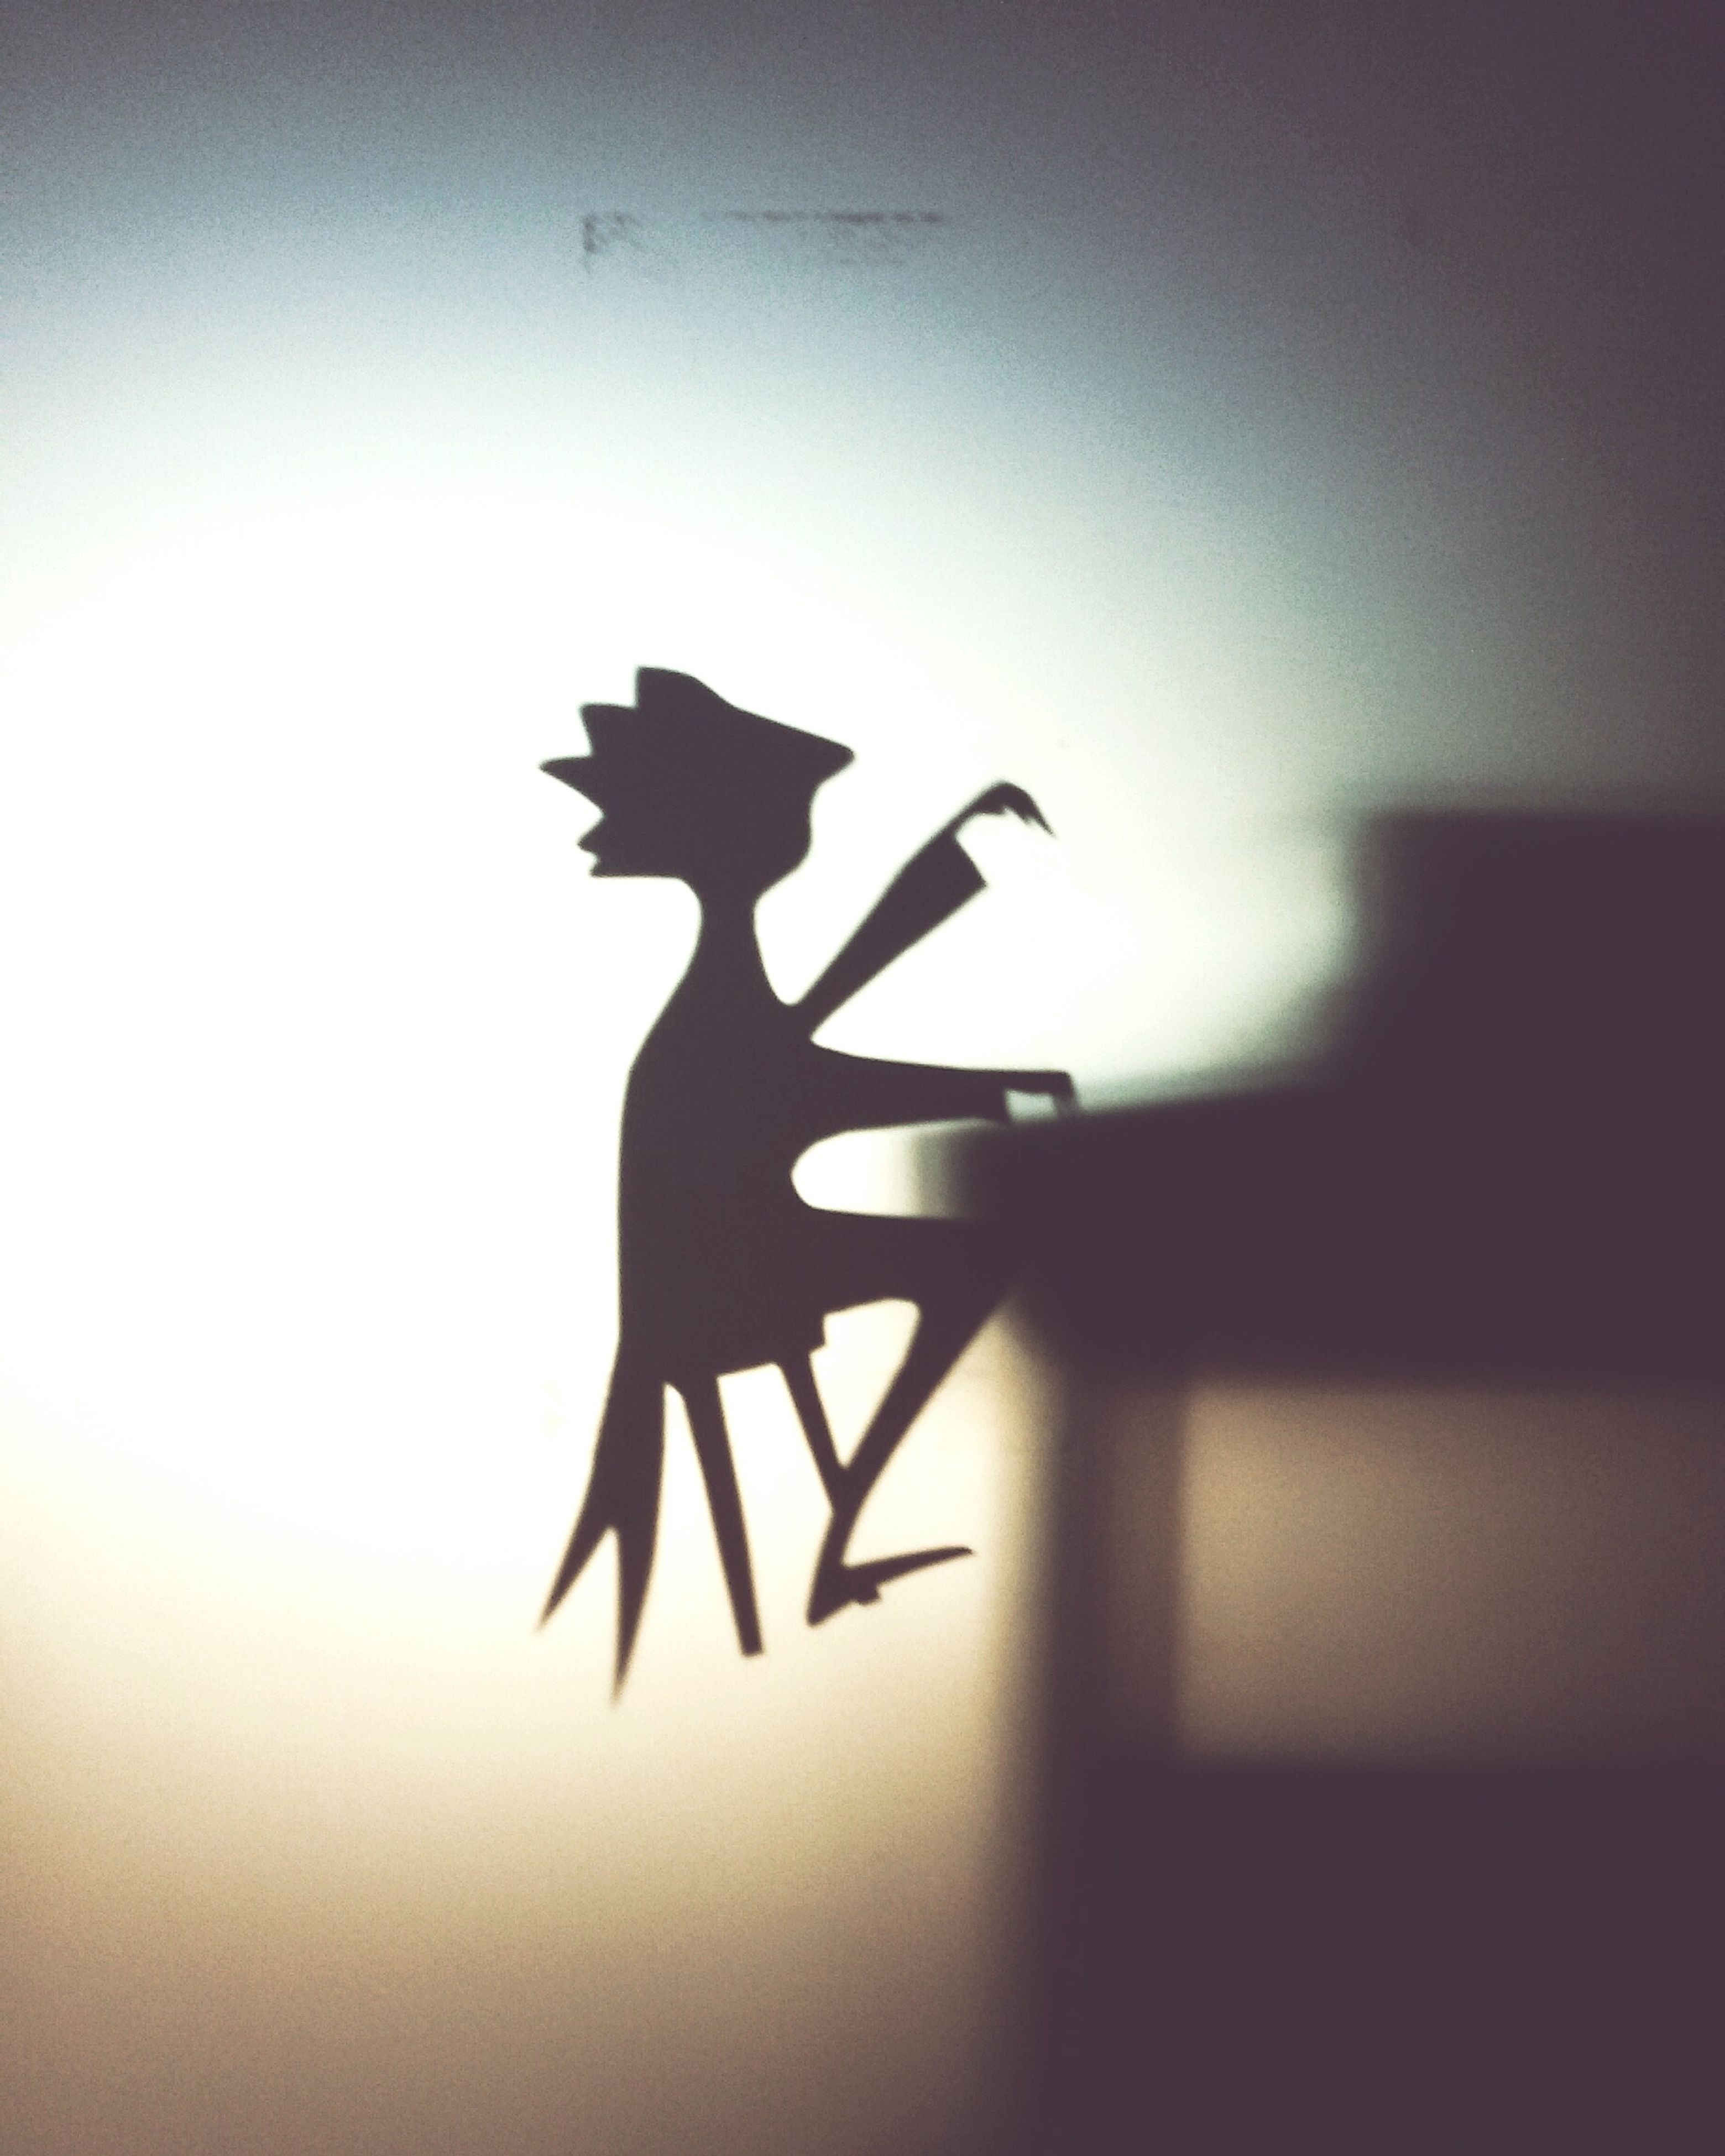 silhouette, animal representation, selective focus, outline, focus on foreground, zoology, no people, man made object